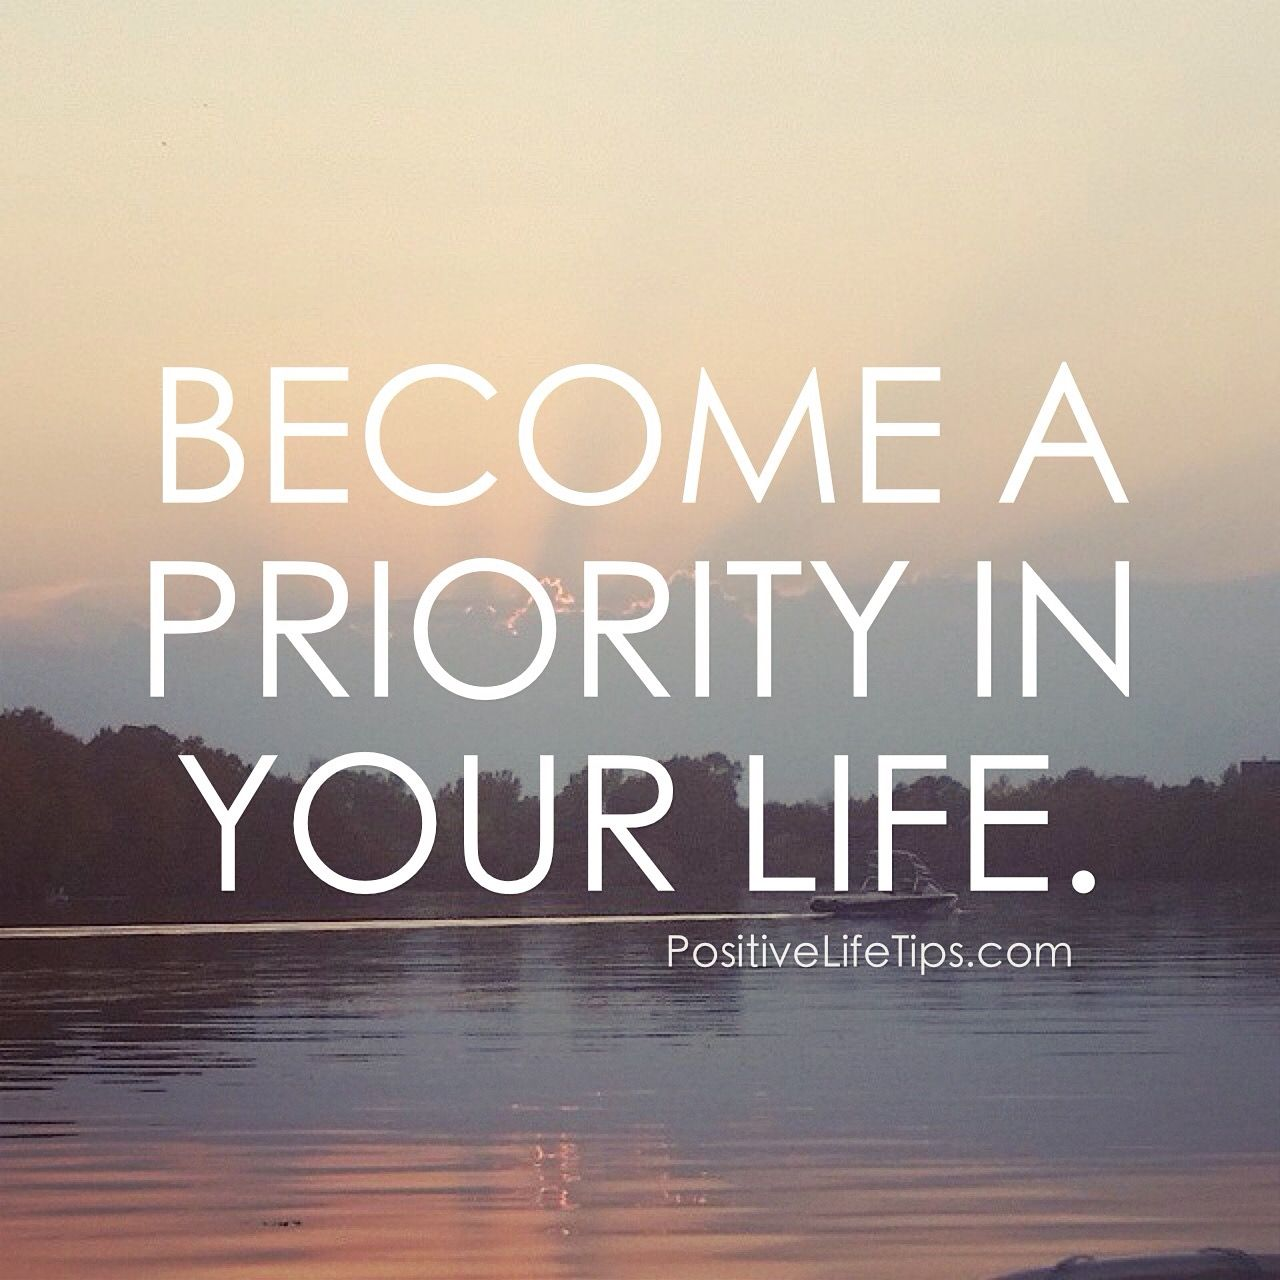 How Do You Put Quotes On Pictures: Become A Priority In Your Life. You Need To Take Care Of